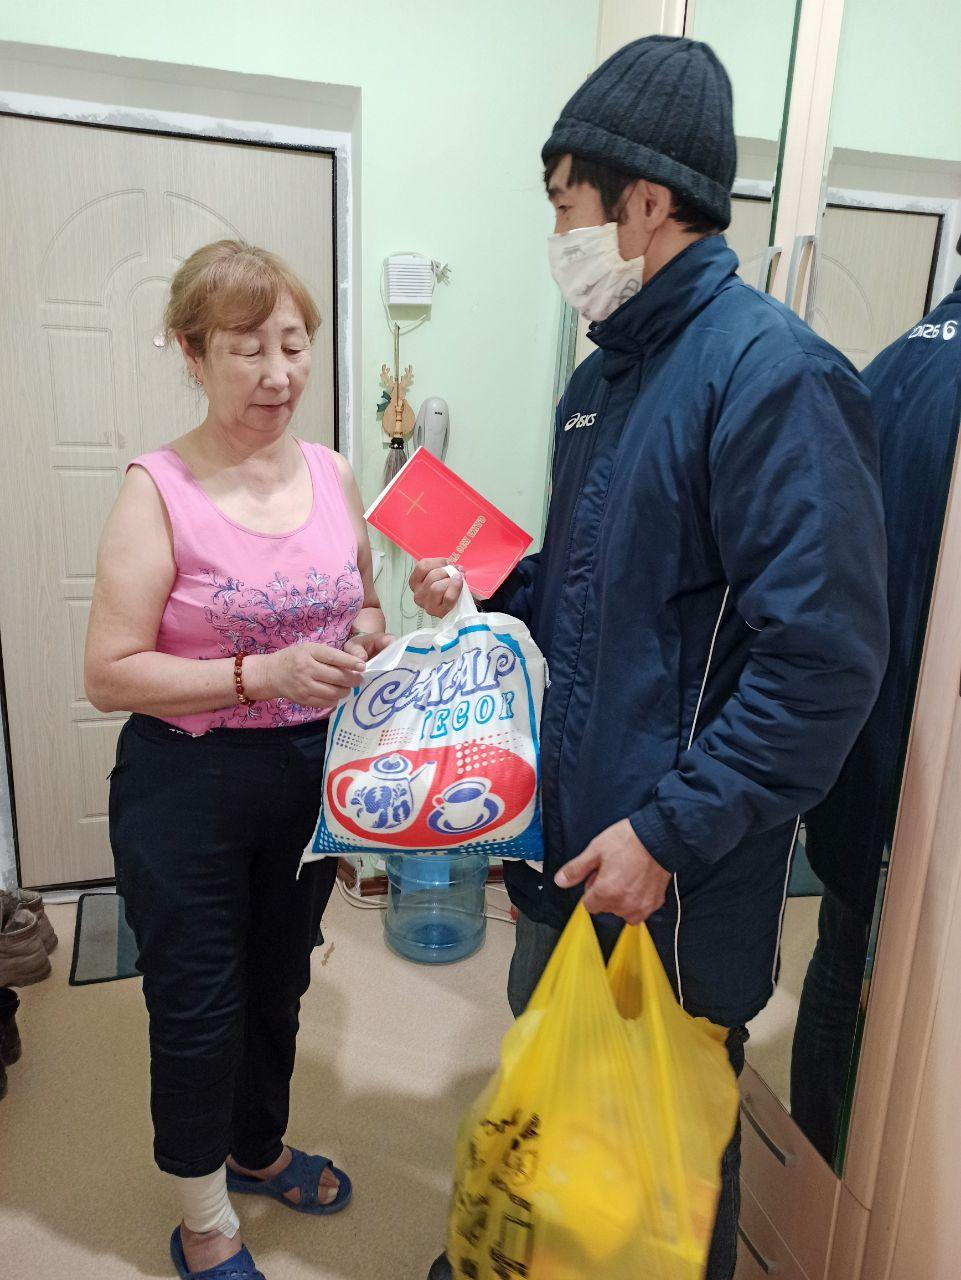 Bringing much-needed supplies and the Gospel to people stuck in their homes.